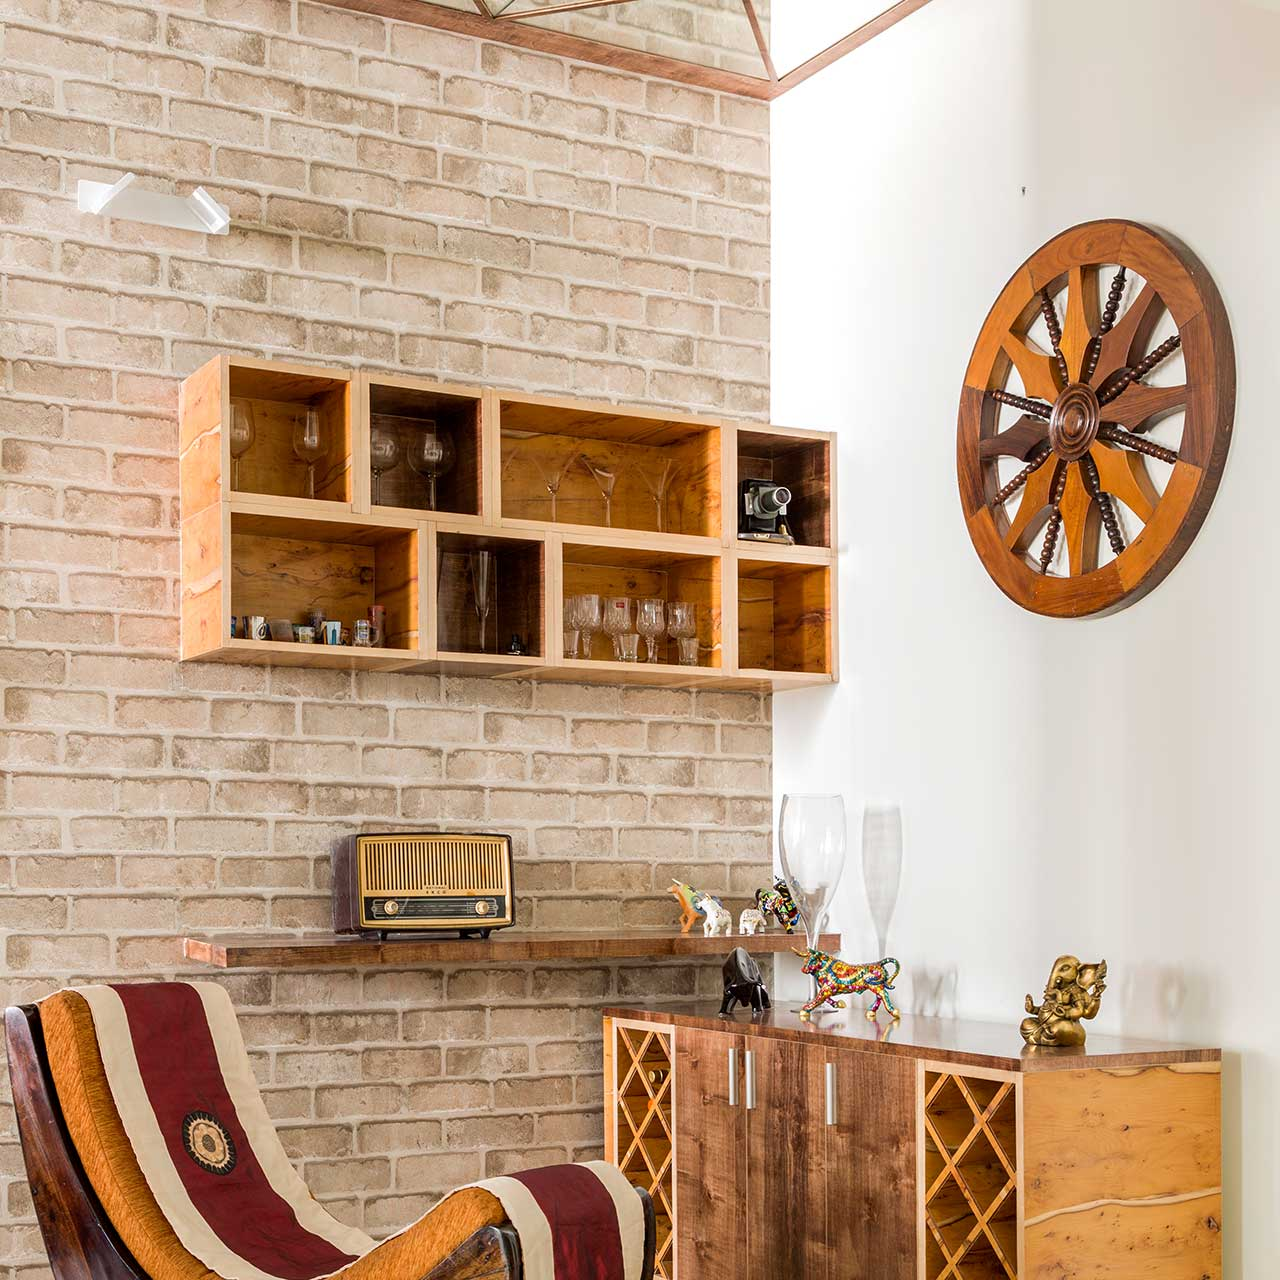 Going Handmade and Organic with Rustic Style